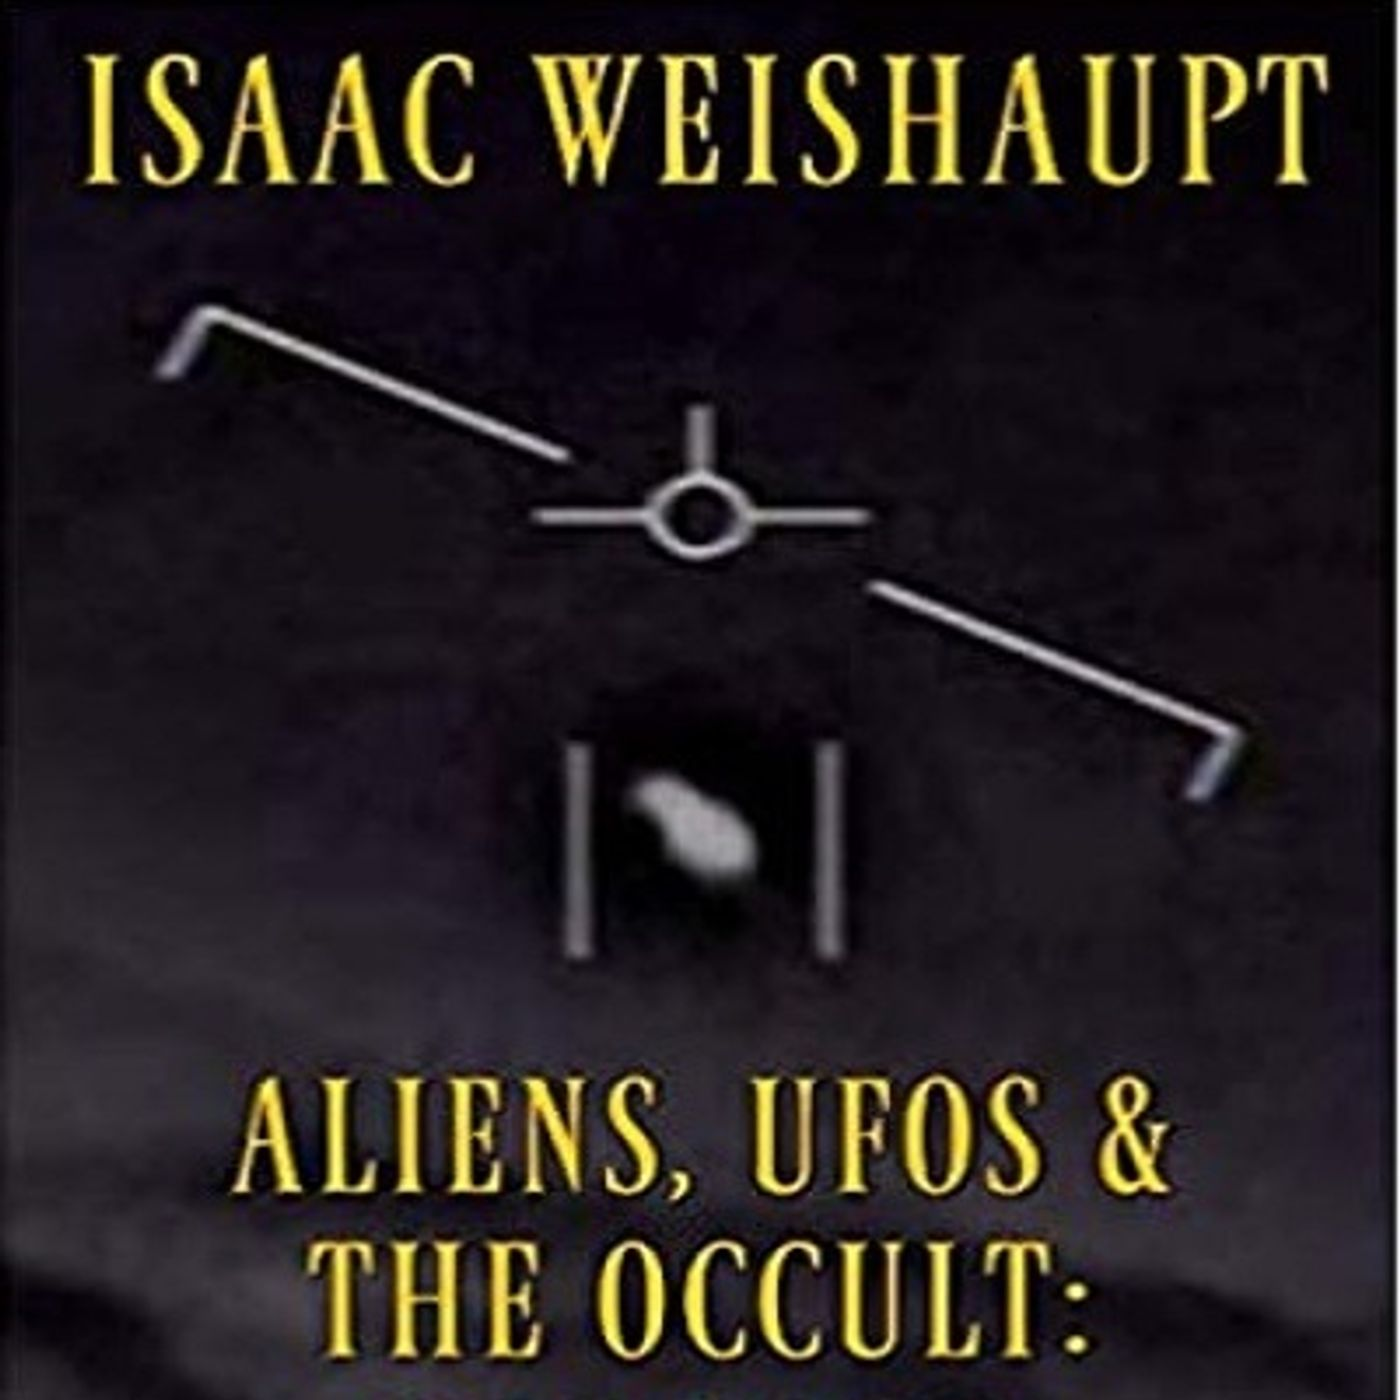 UFOs & the Occult with Isaac Weishaupt